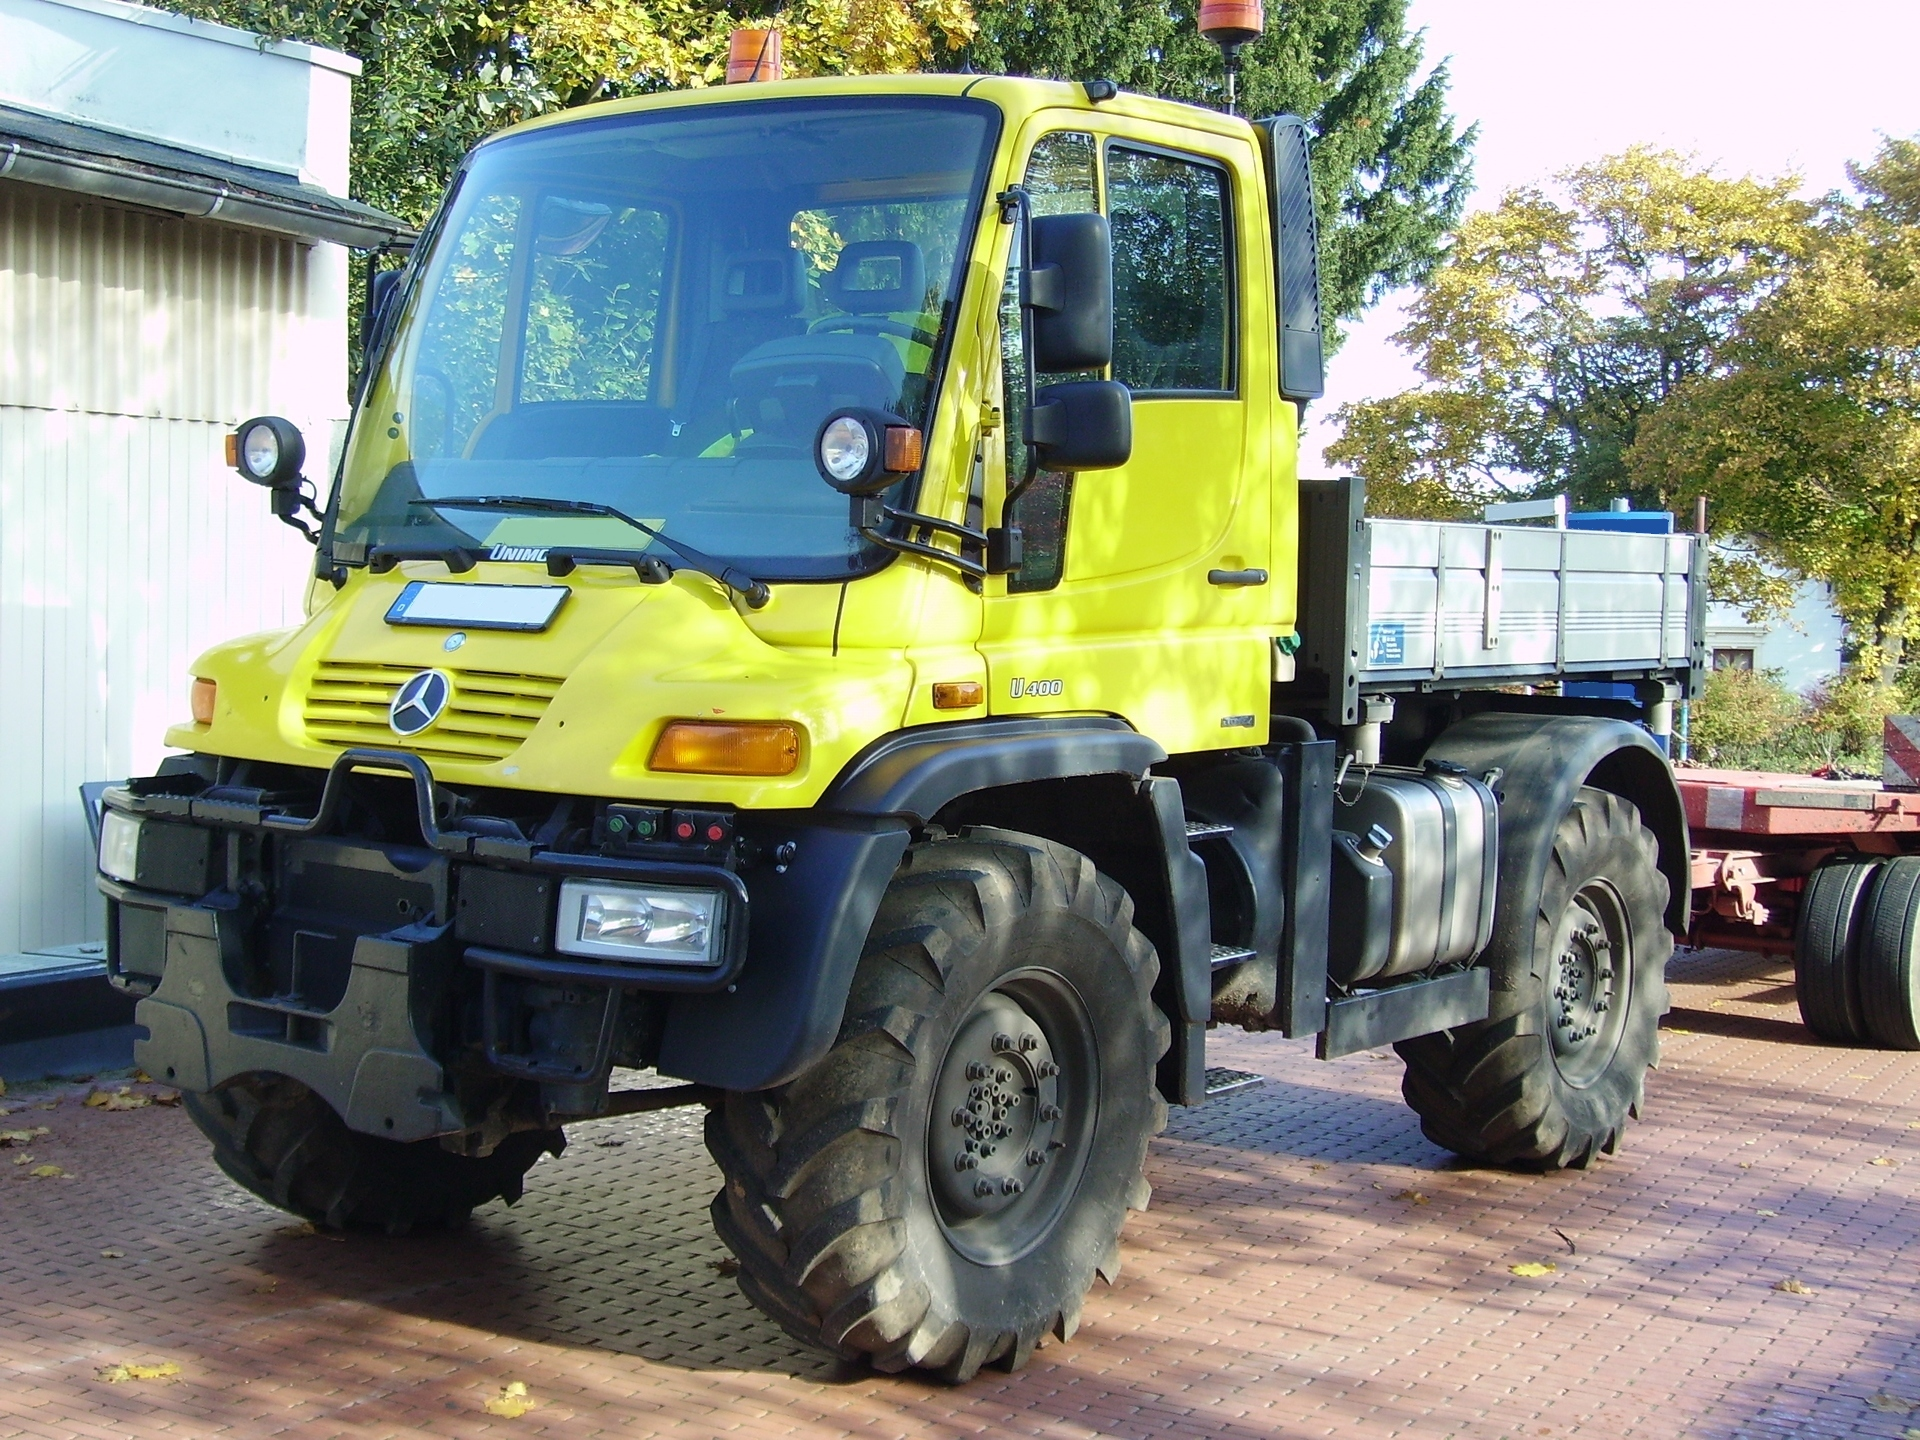 Rv Mercedes >> File:Unimog U 400.jpg - Wikimedia Commons